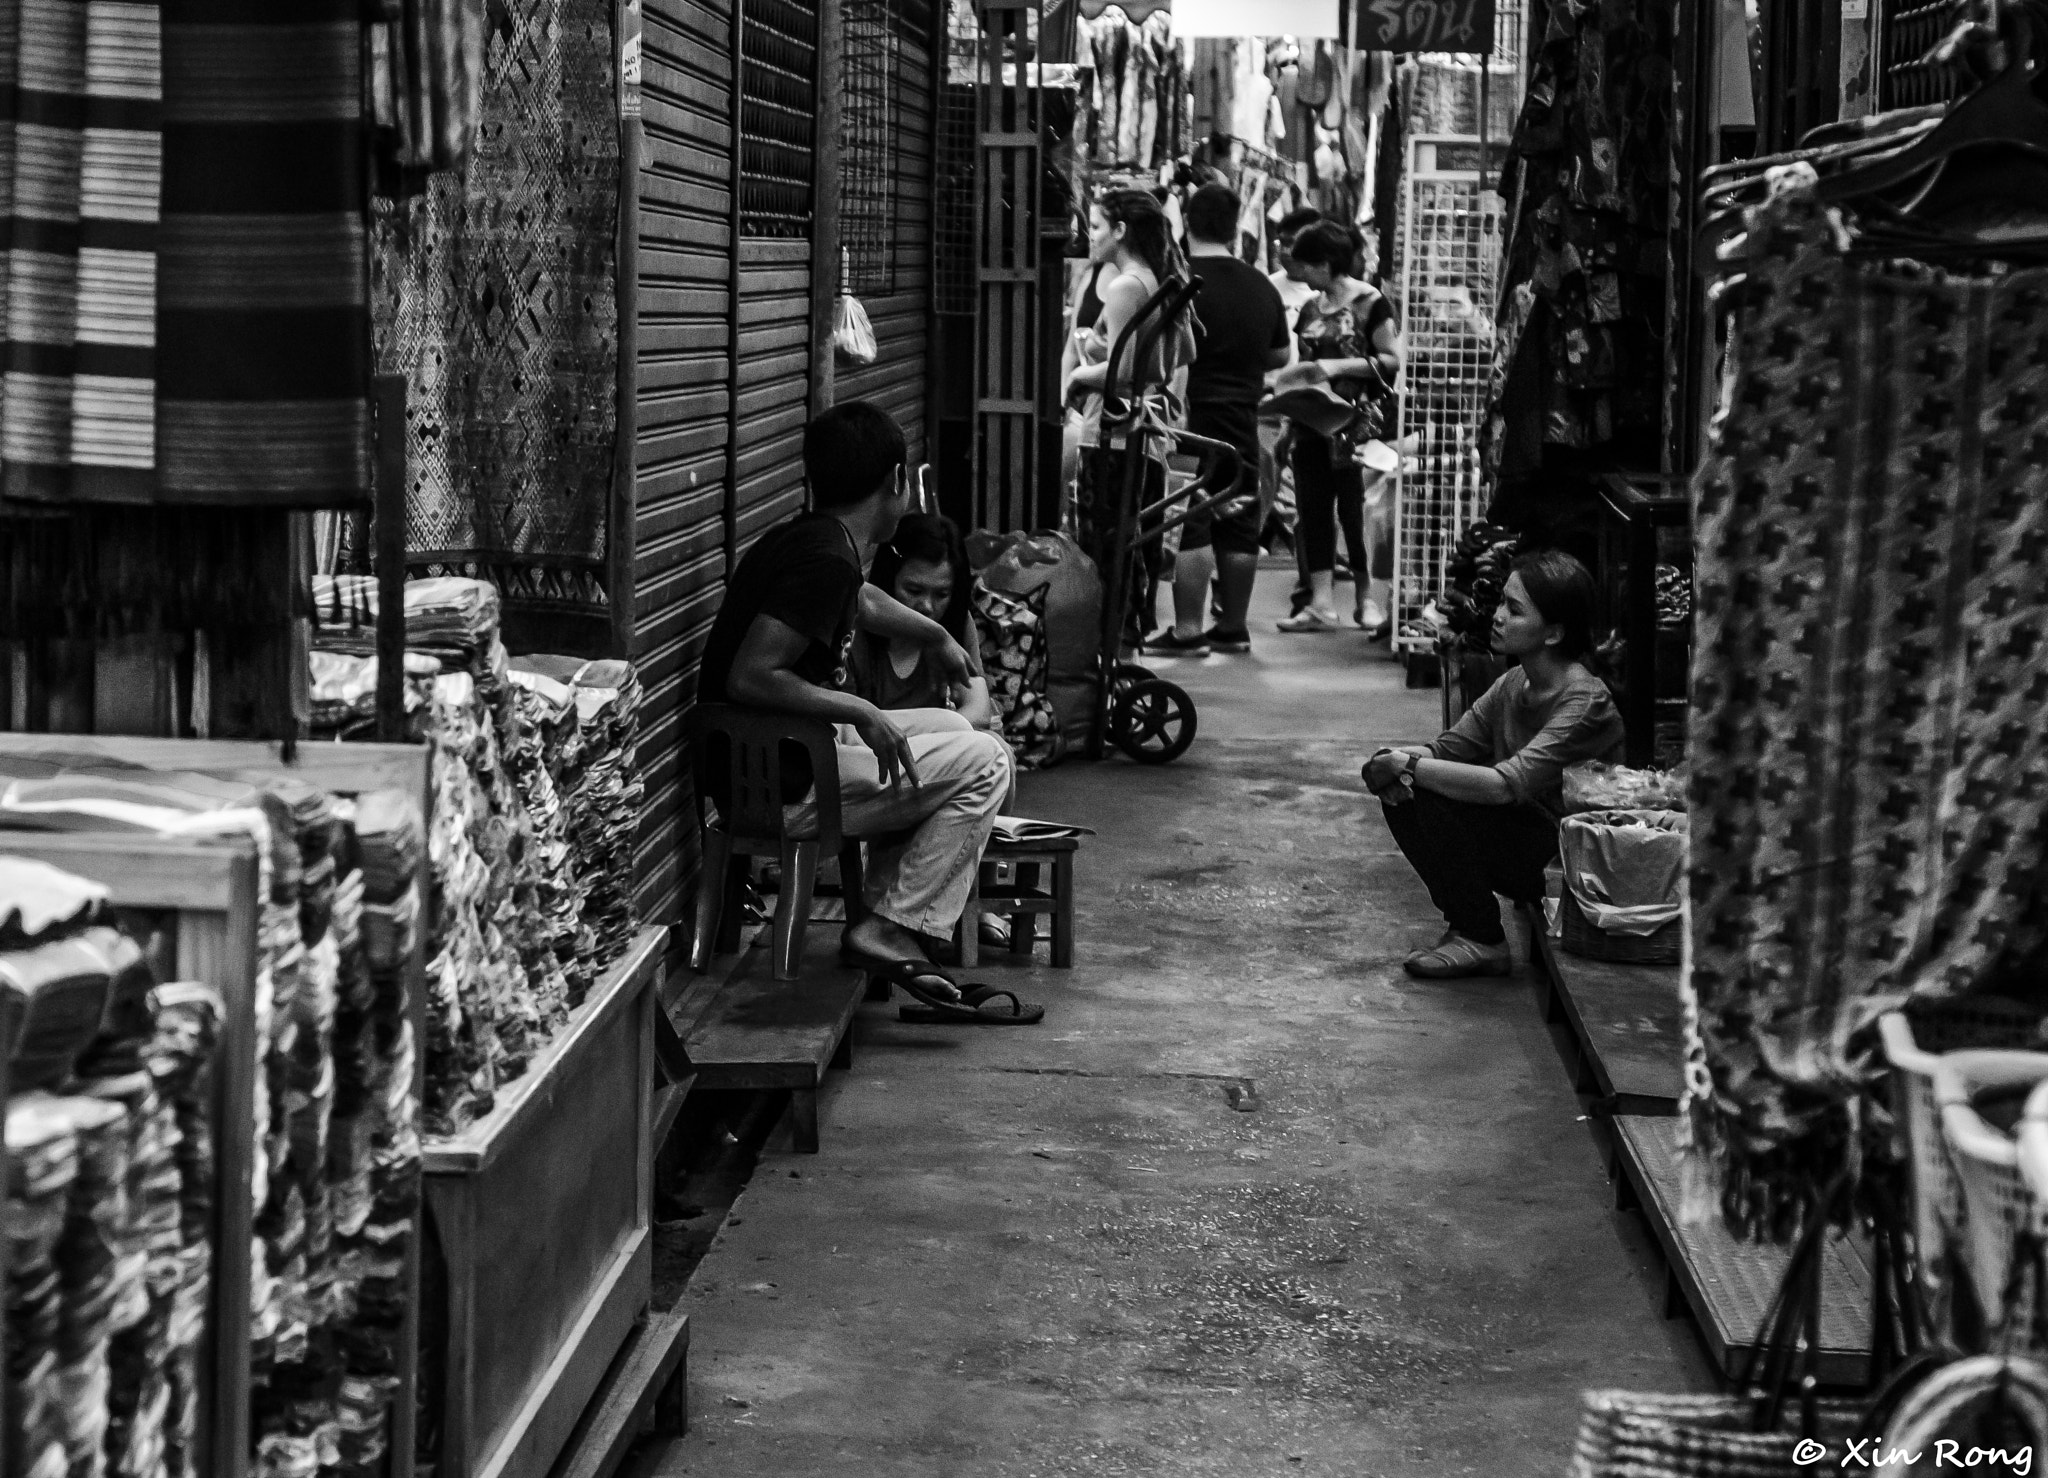 Photograph Along The Alley by Tan Xin Rong on 500px